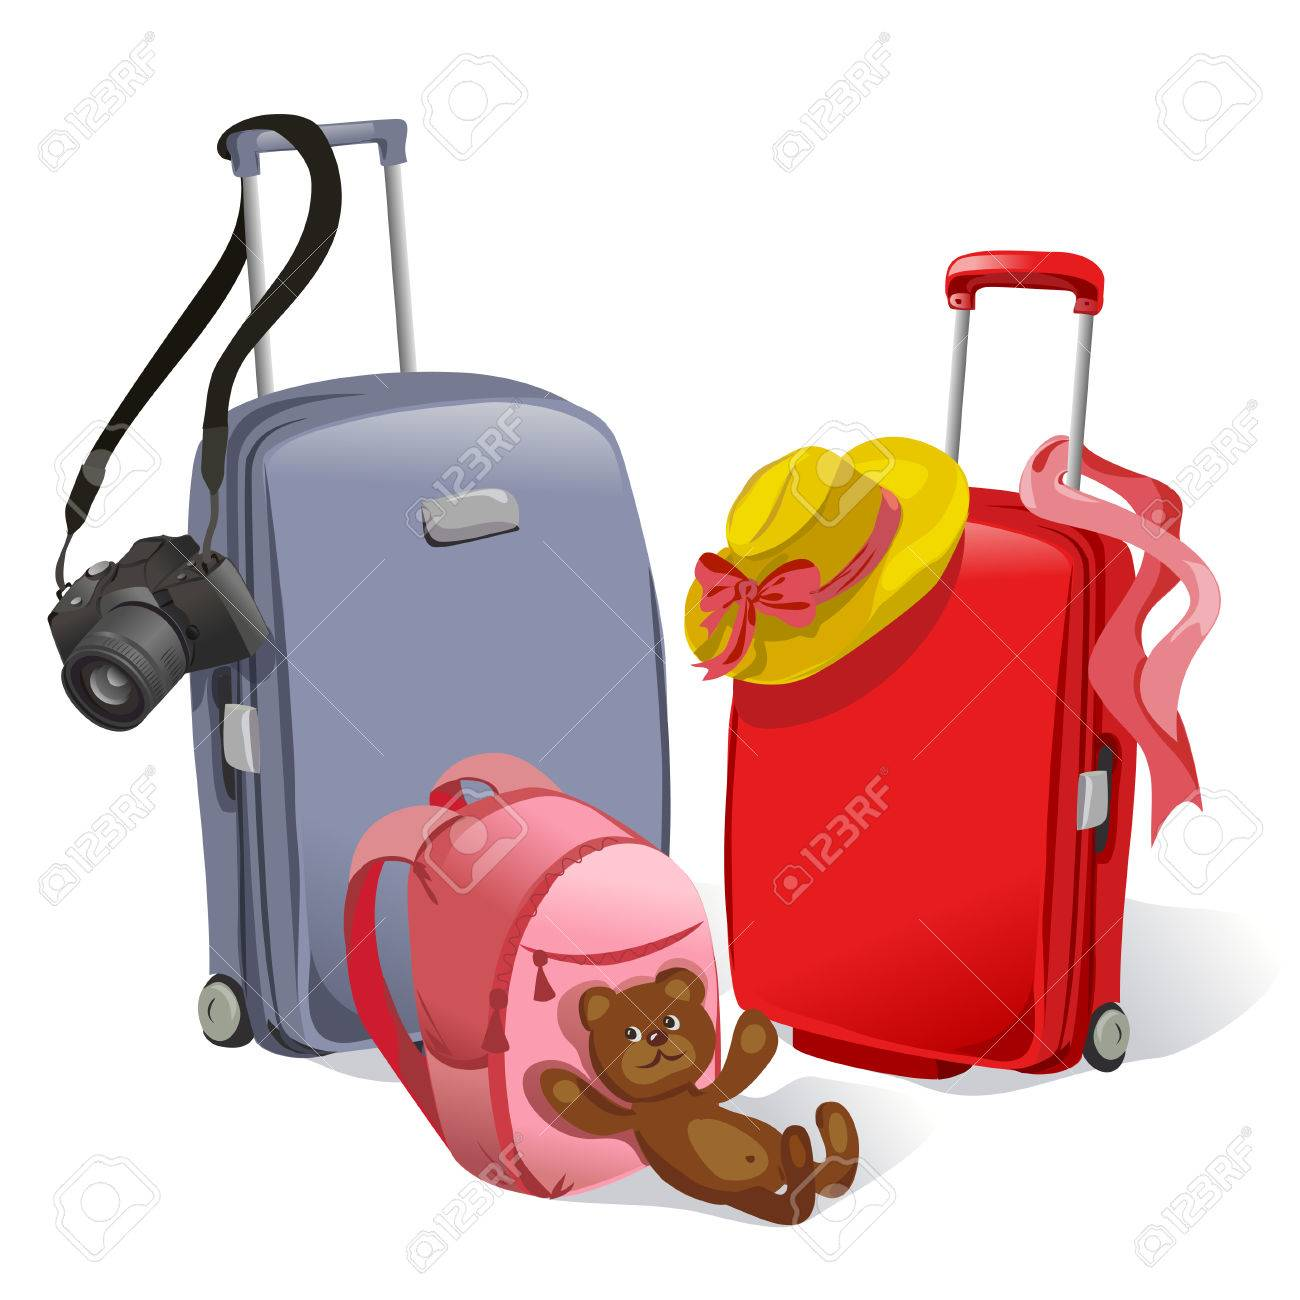 two suitcases and children's backpack. vector illustration Standard-Bild - 26233935